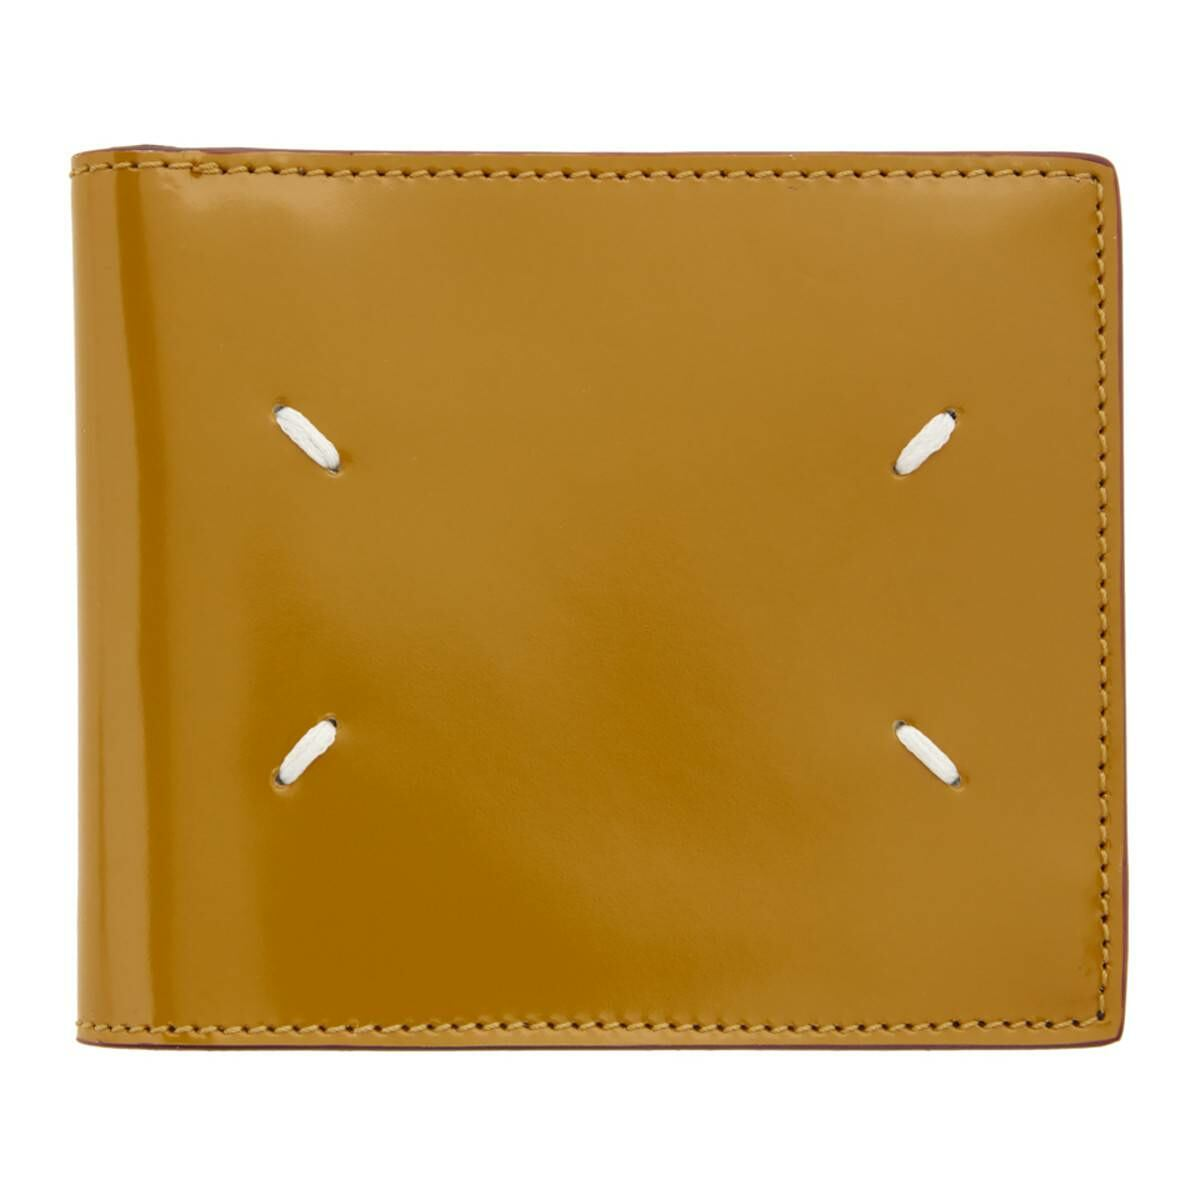 Maison Margiela Yellow Thrush Wallet Ssense USA MEN Men ACCESSORIES Mens WALLETS